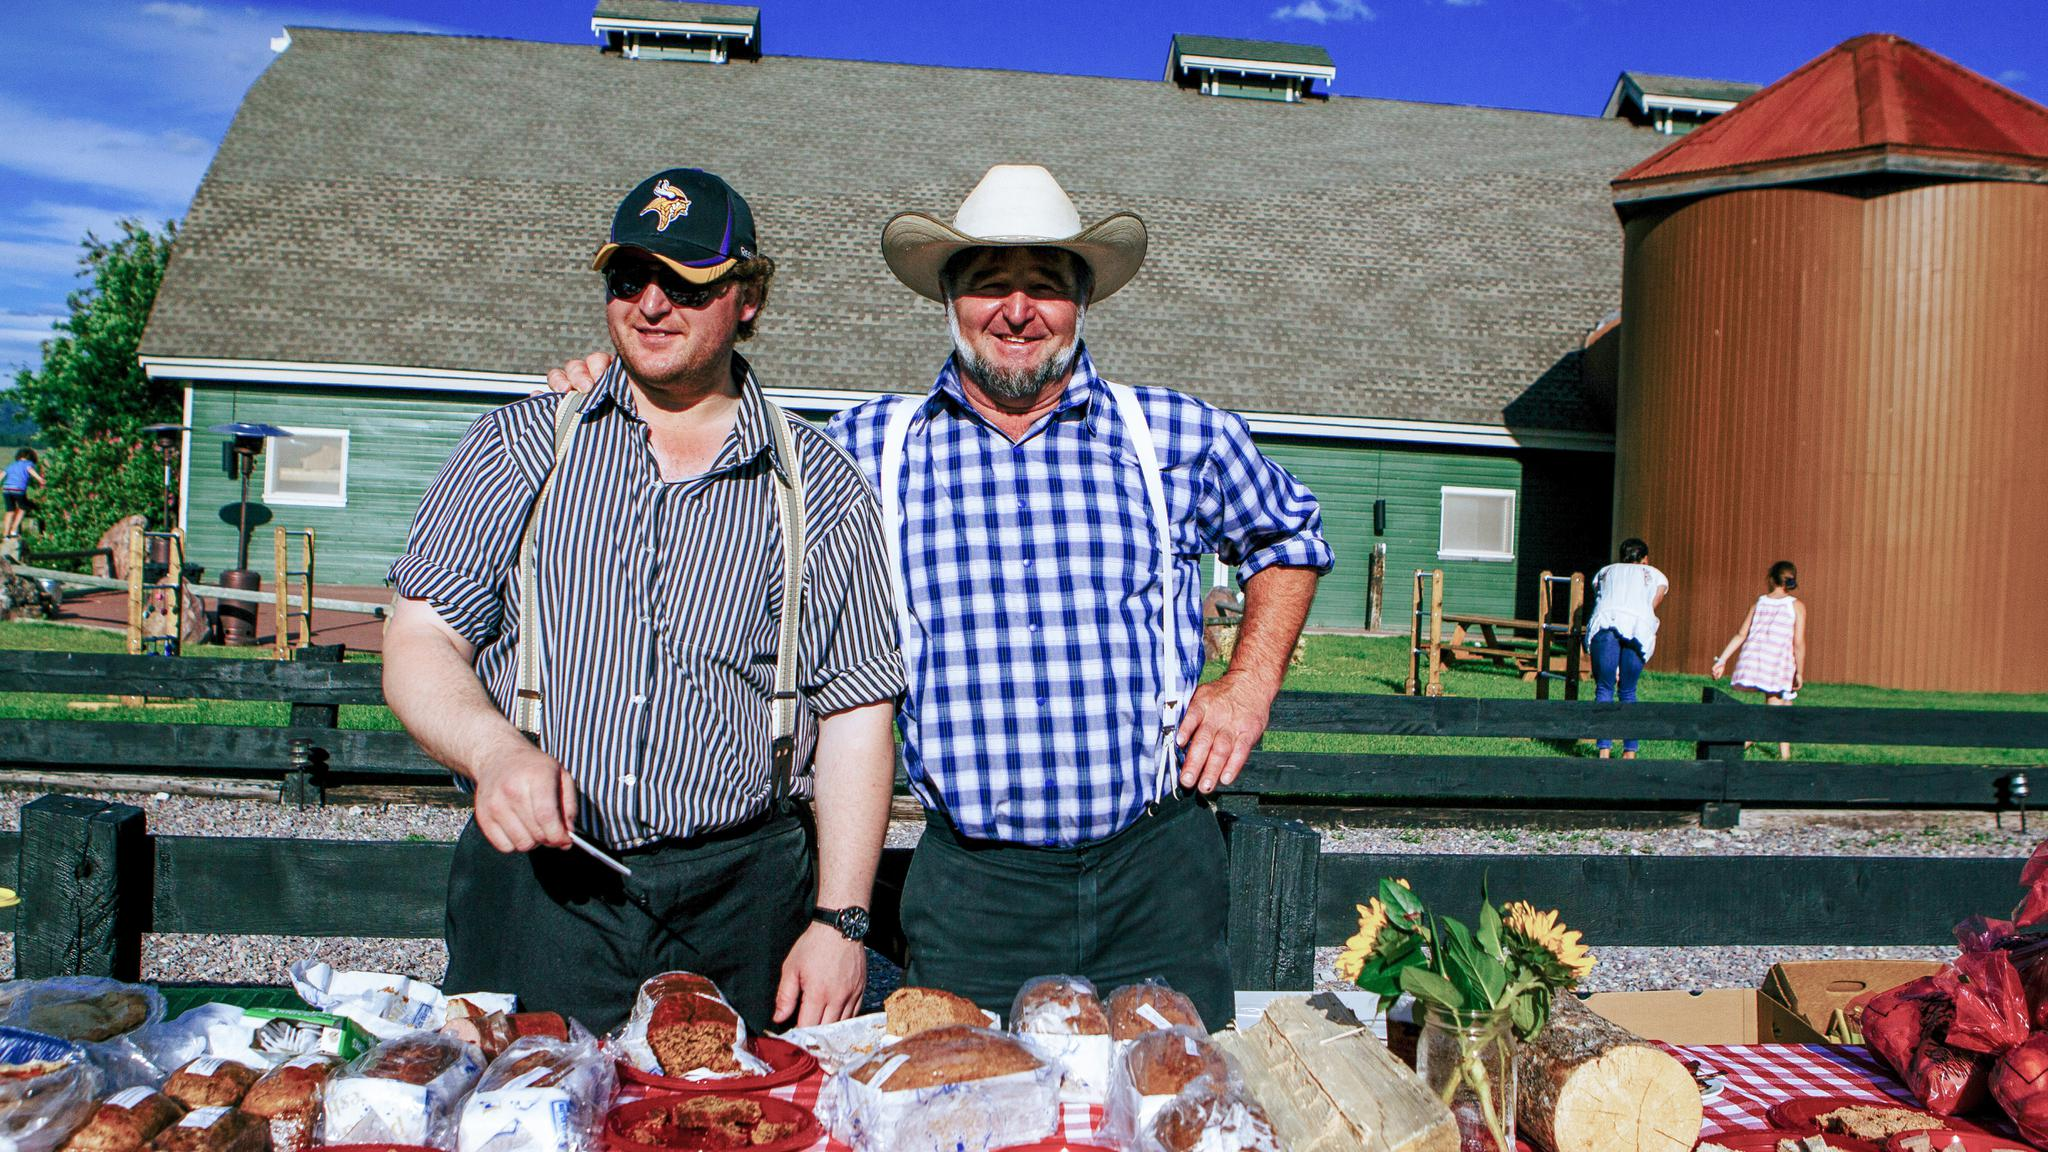 Hutterites: The Small Religious Colonies Entwined With